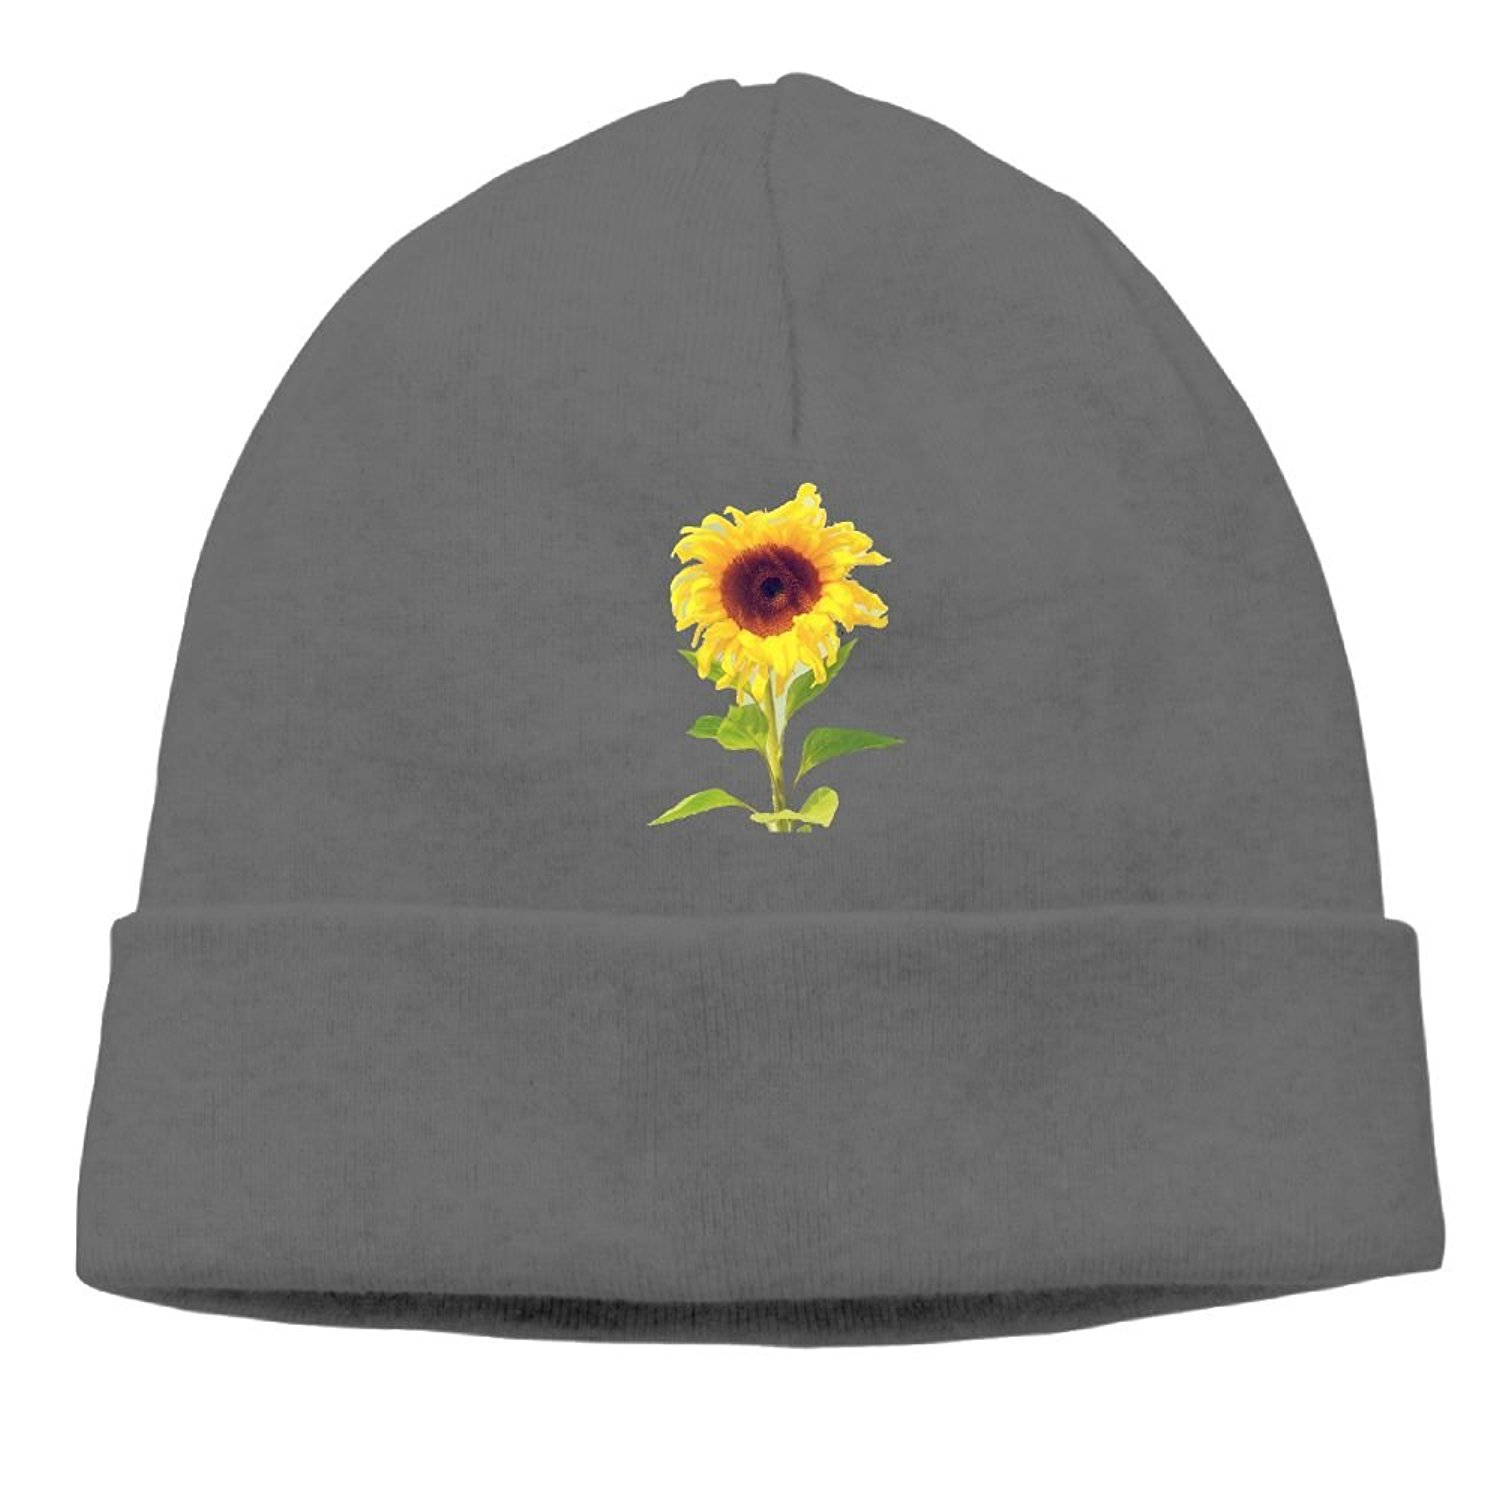 Sunflower Thinsulate Insulated Cuffed Winter Hat